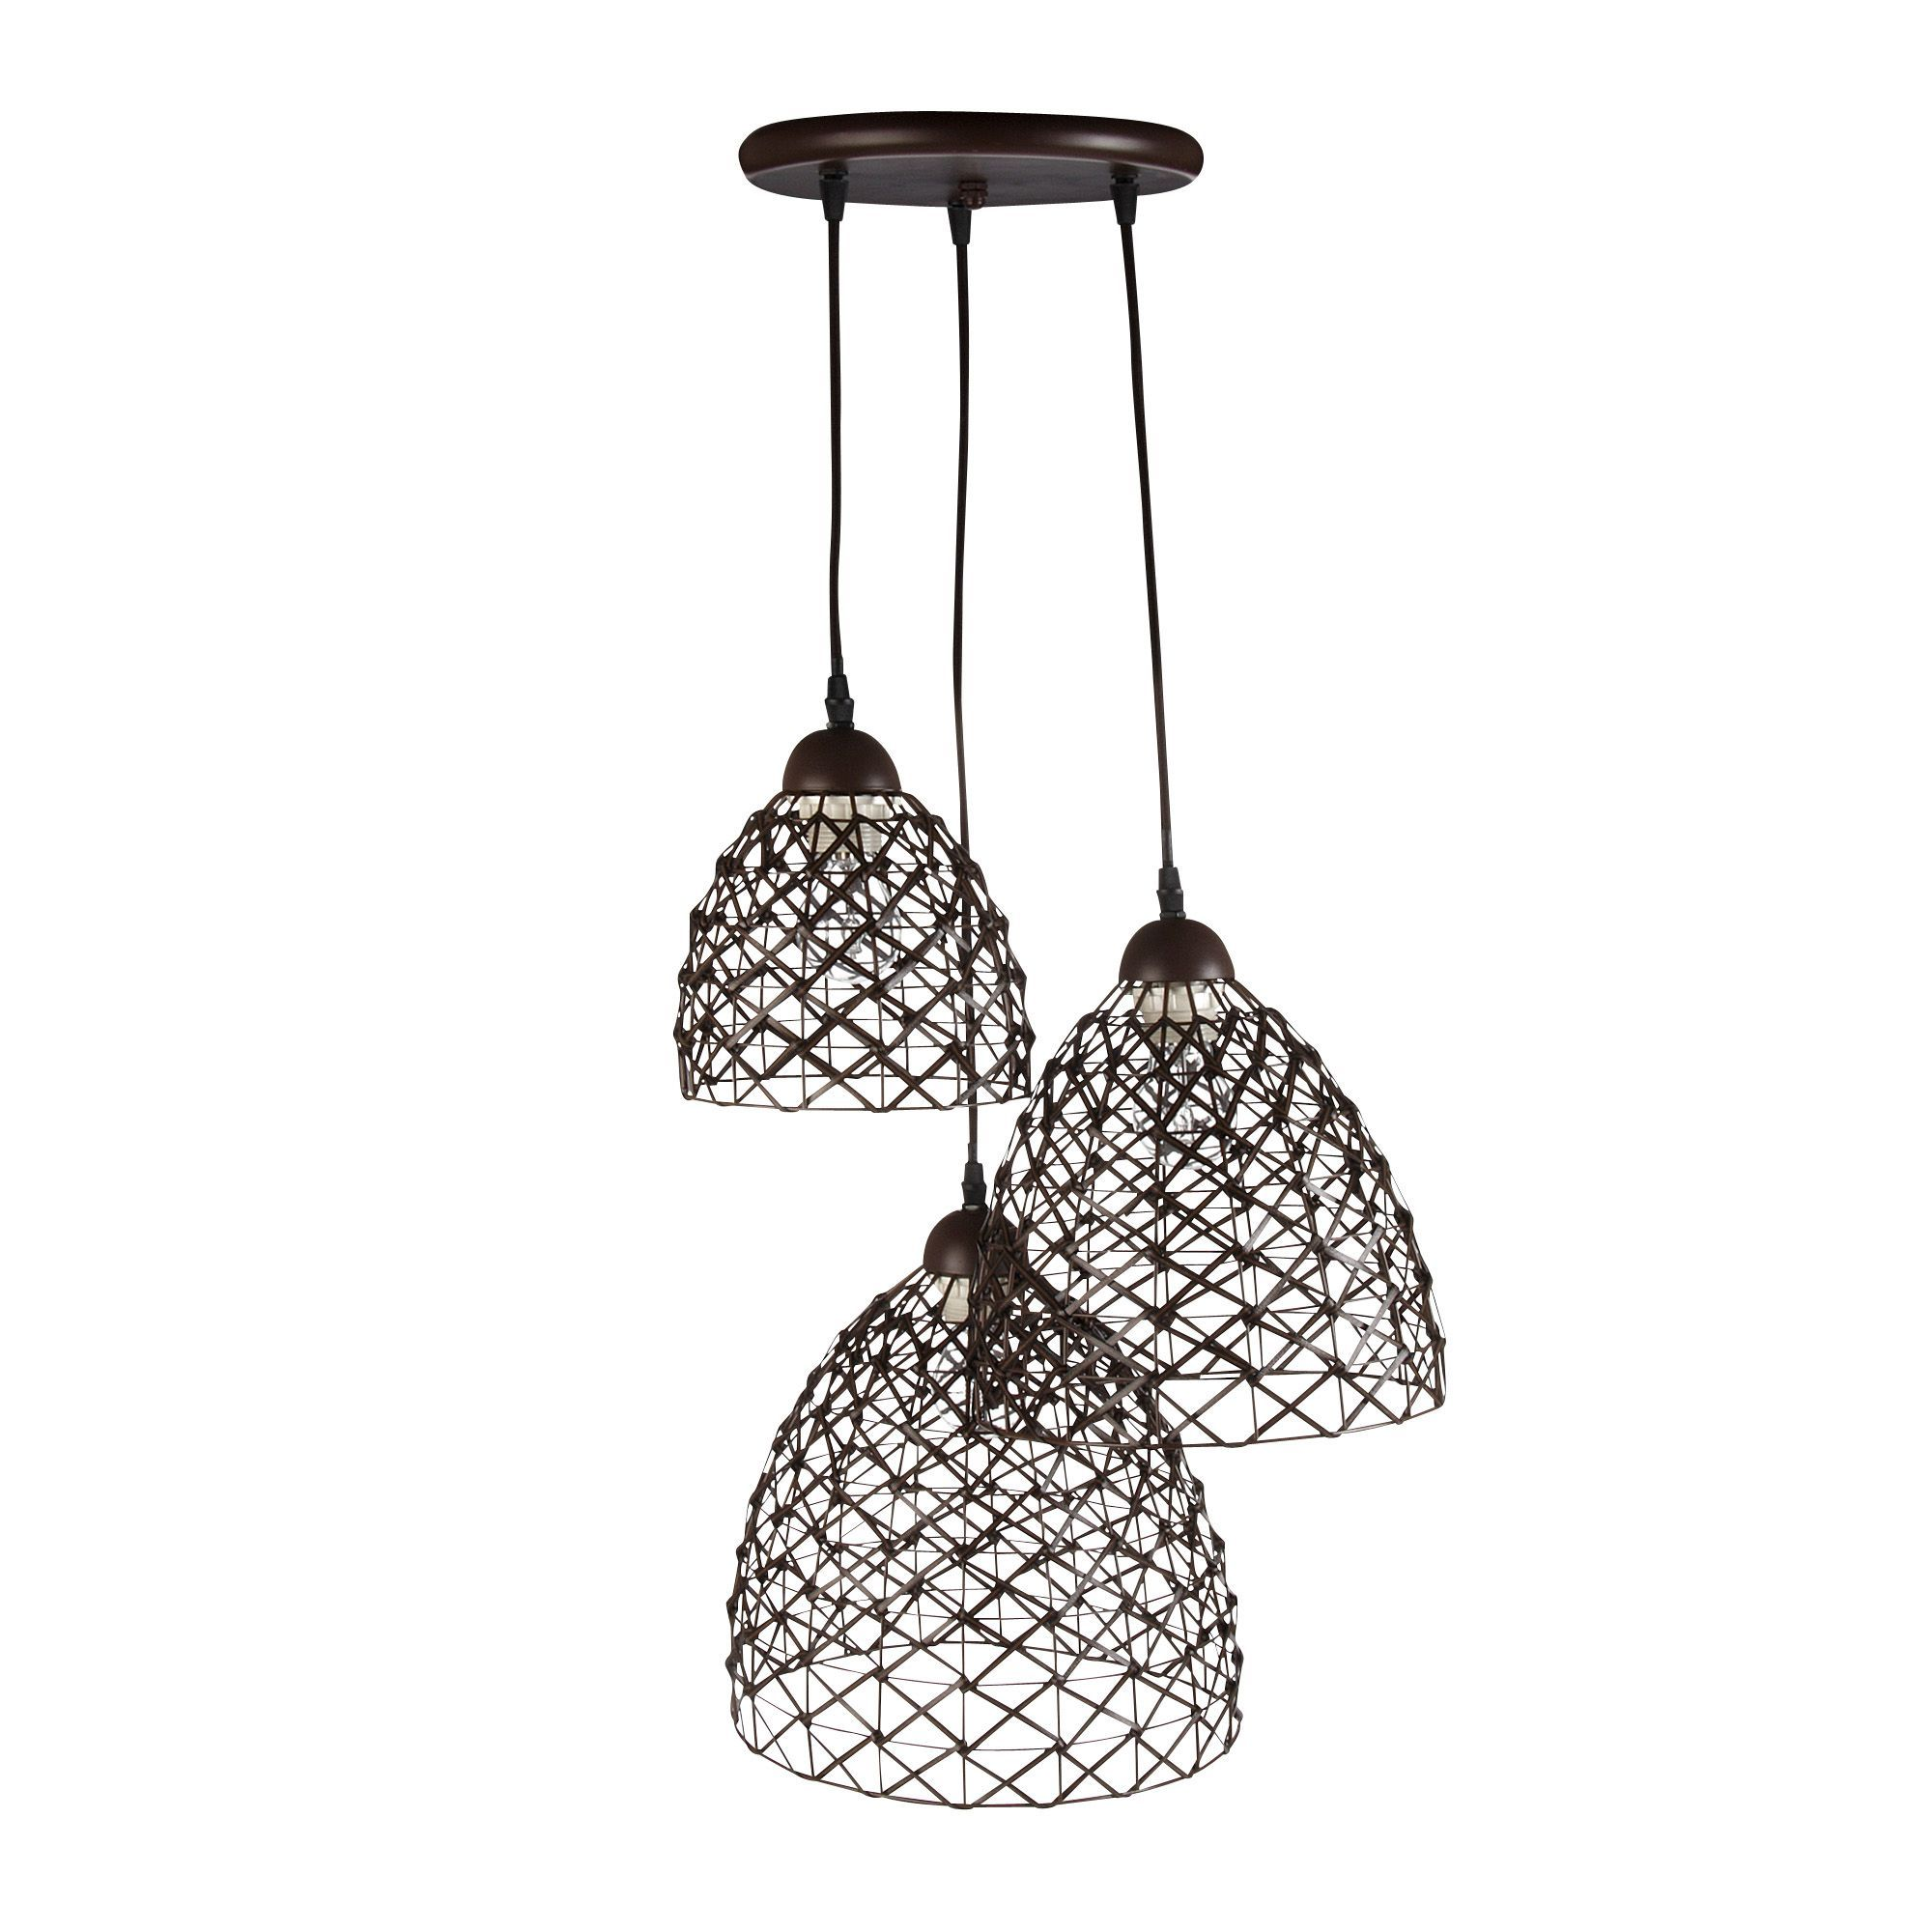 Suspension 3 lumi res chocolat chocolat naty les for Suspension luminaire filaire